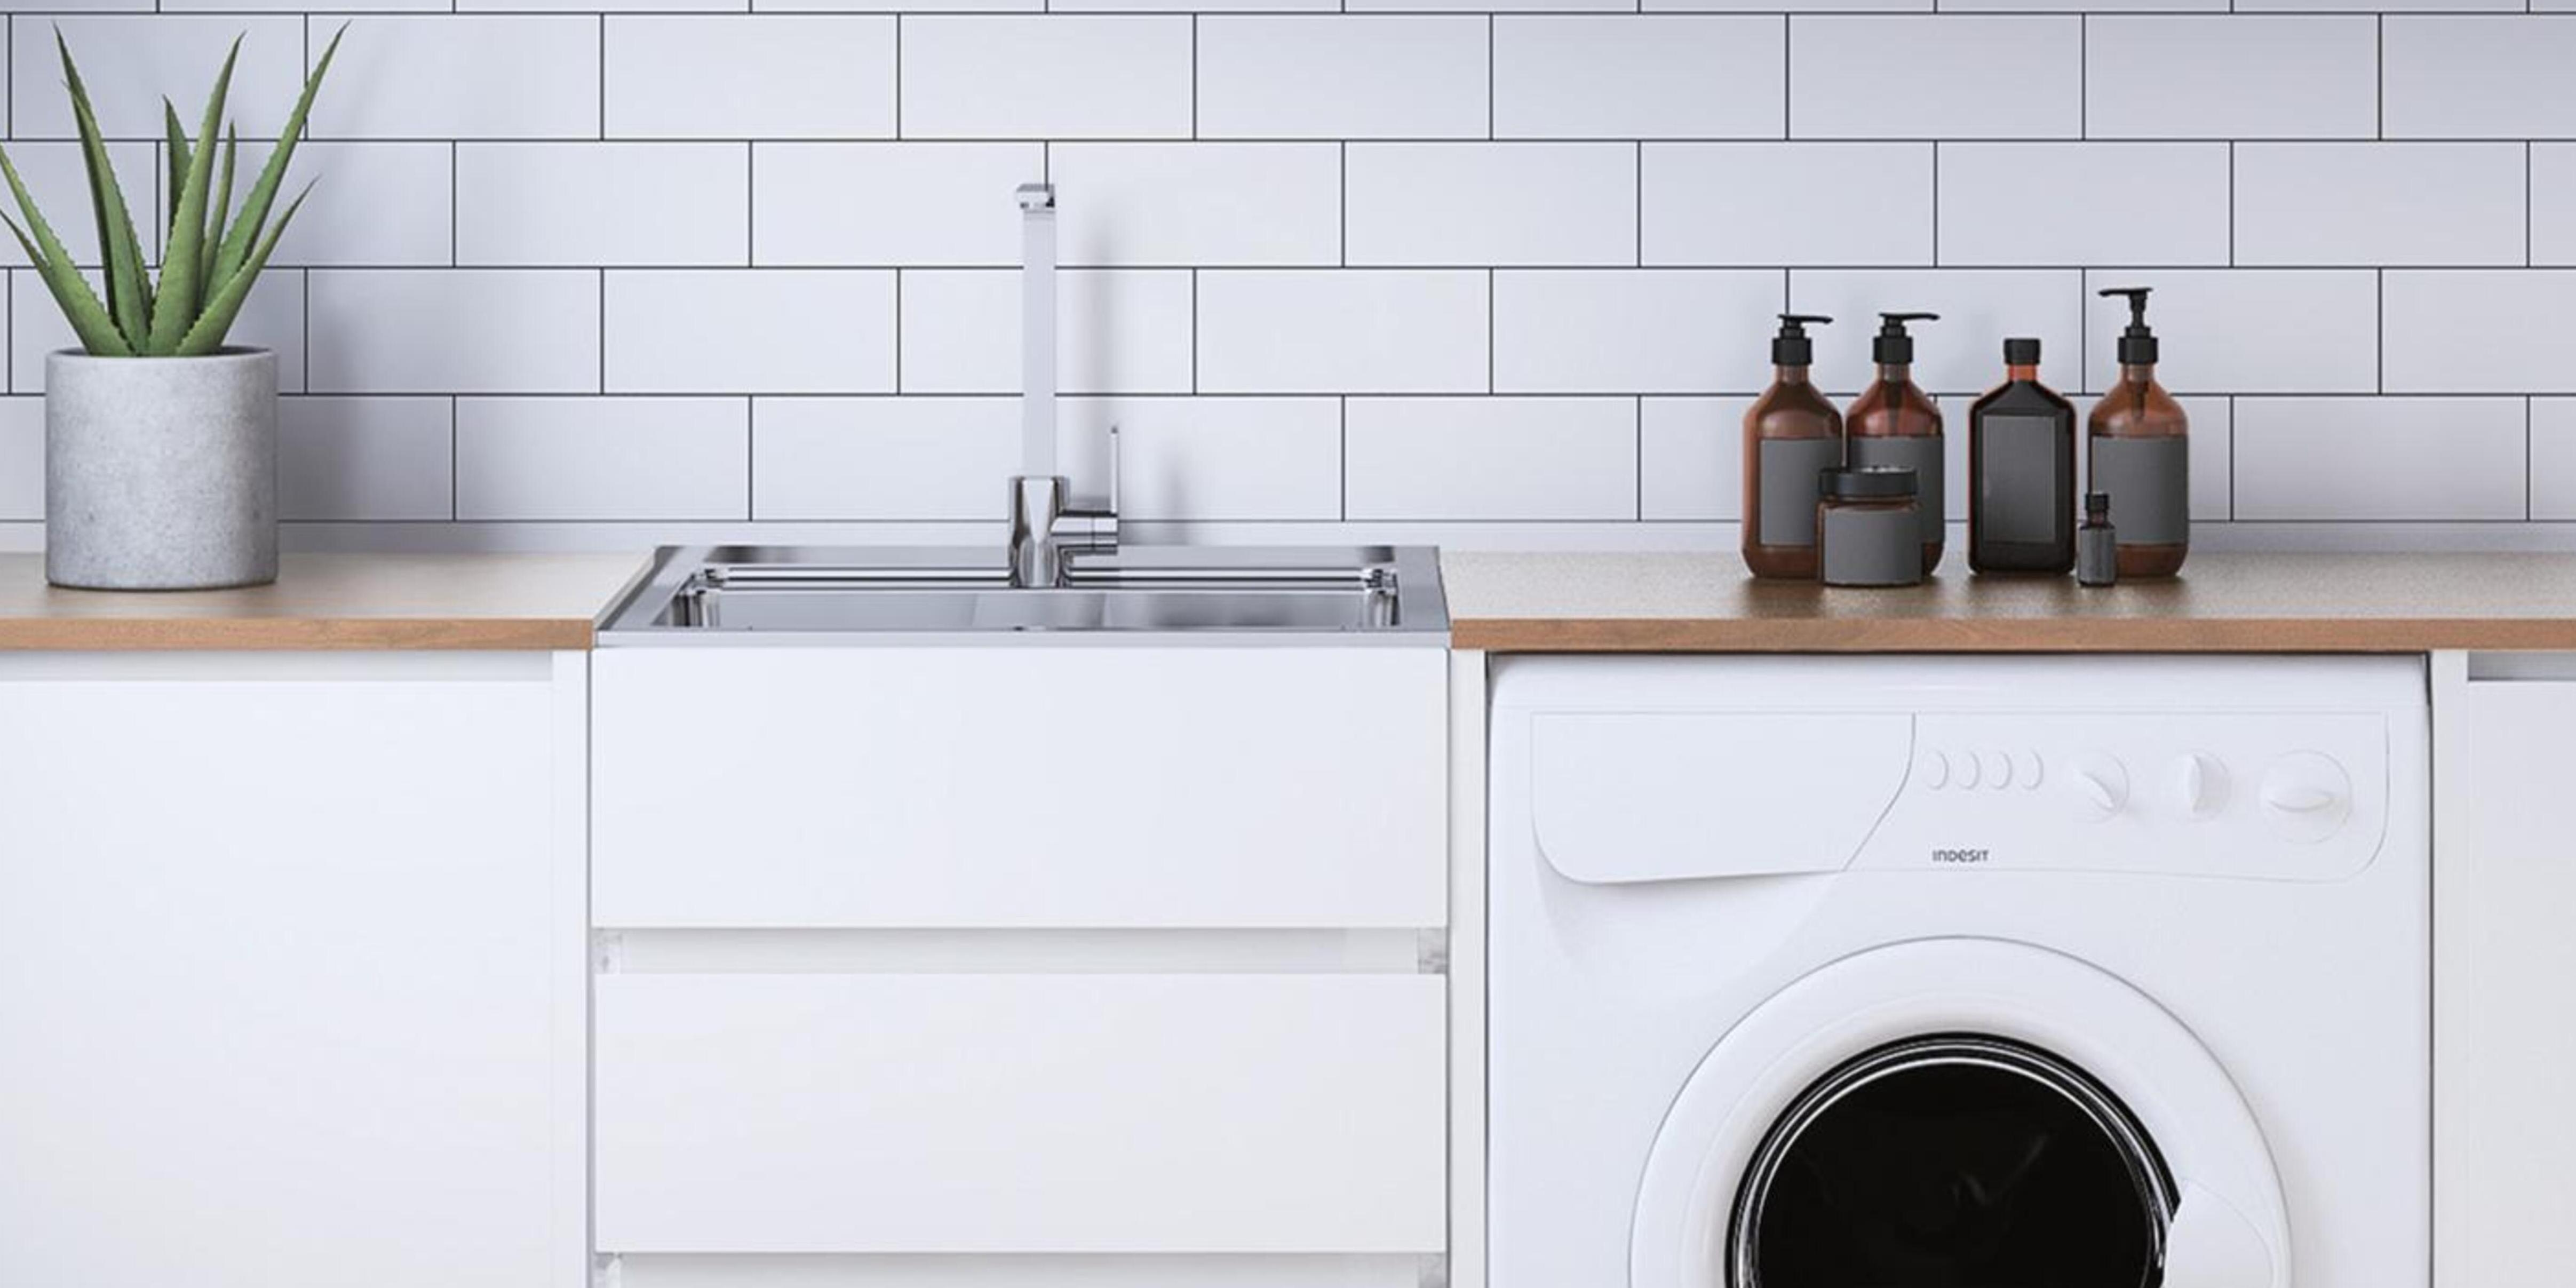 Laundry with sink and washing machine